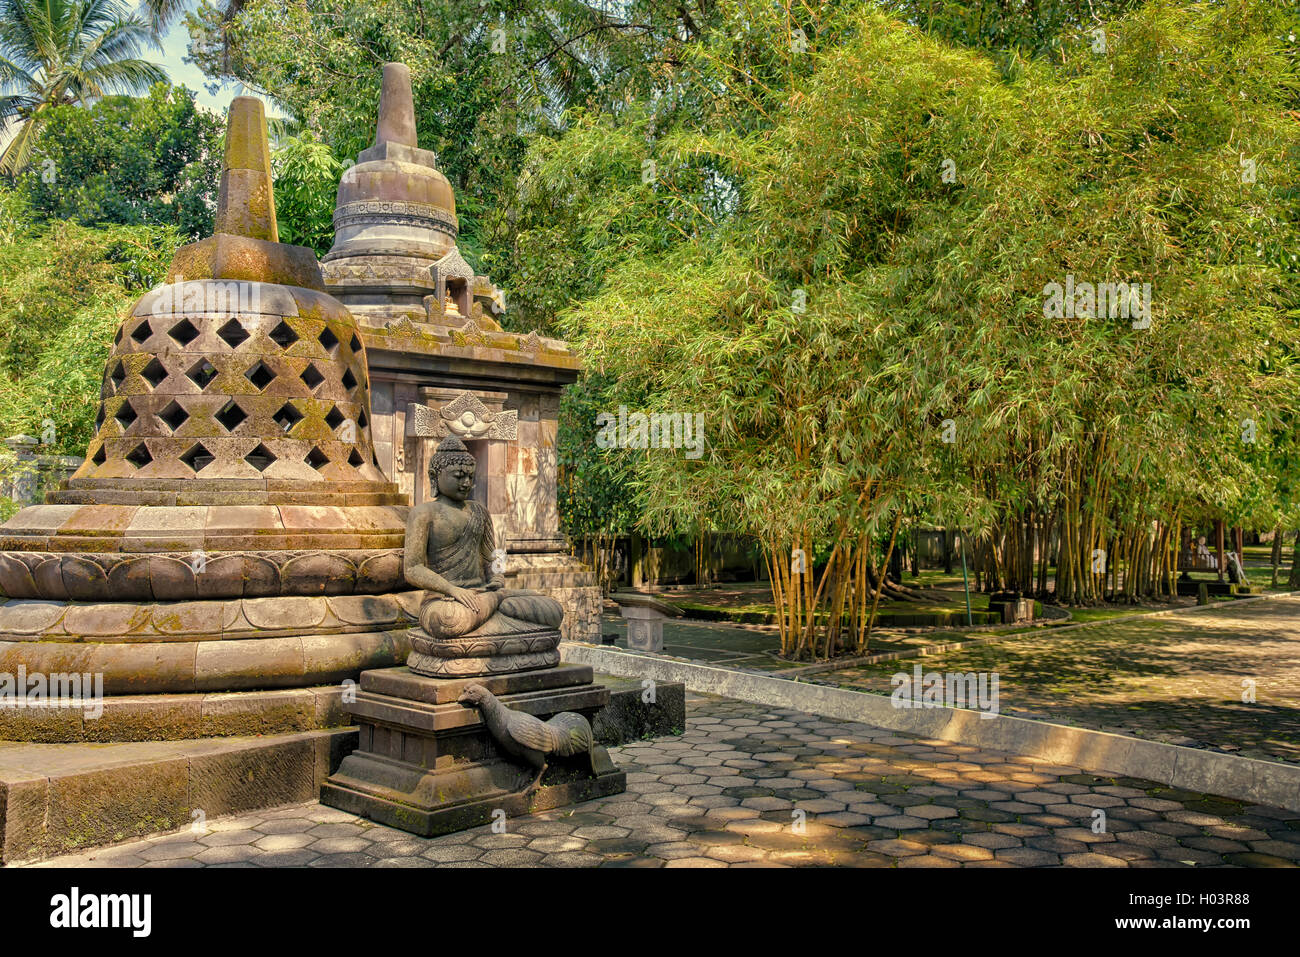 Buddha meditating in front of stone stupas in Mendut temple, Indonesia - Stock Image